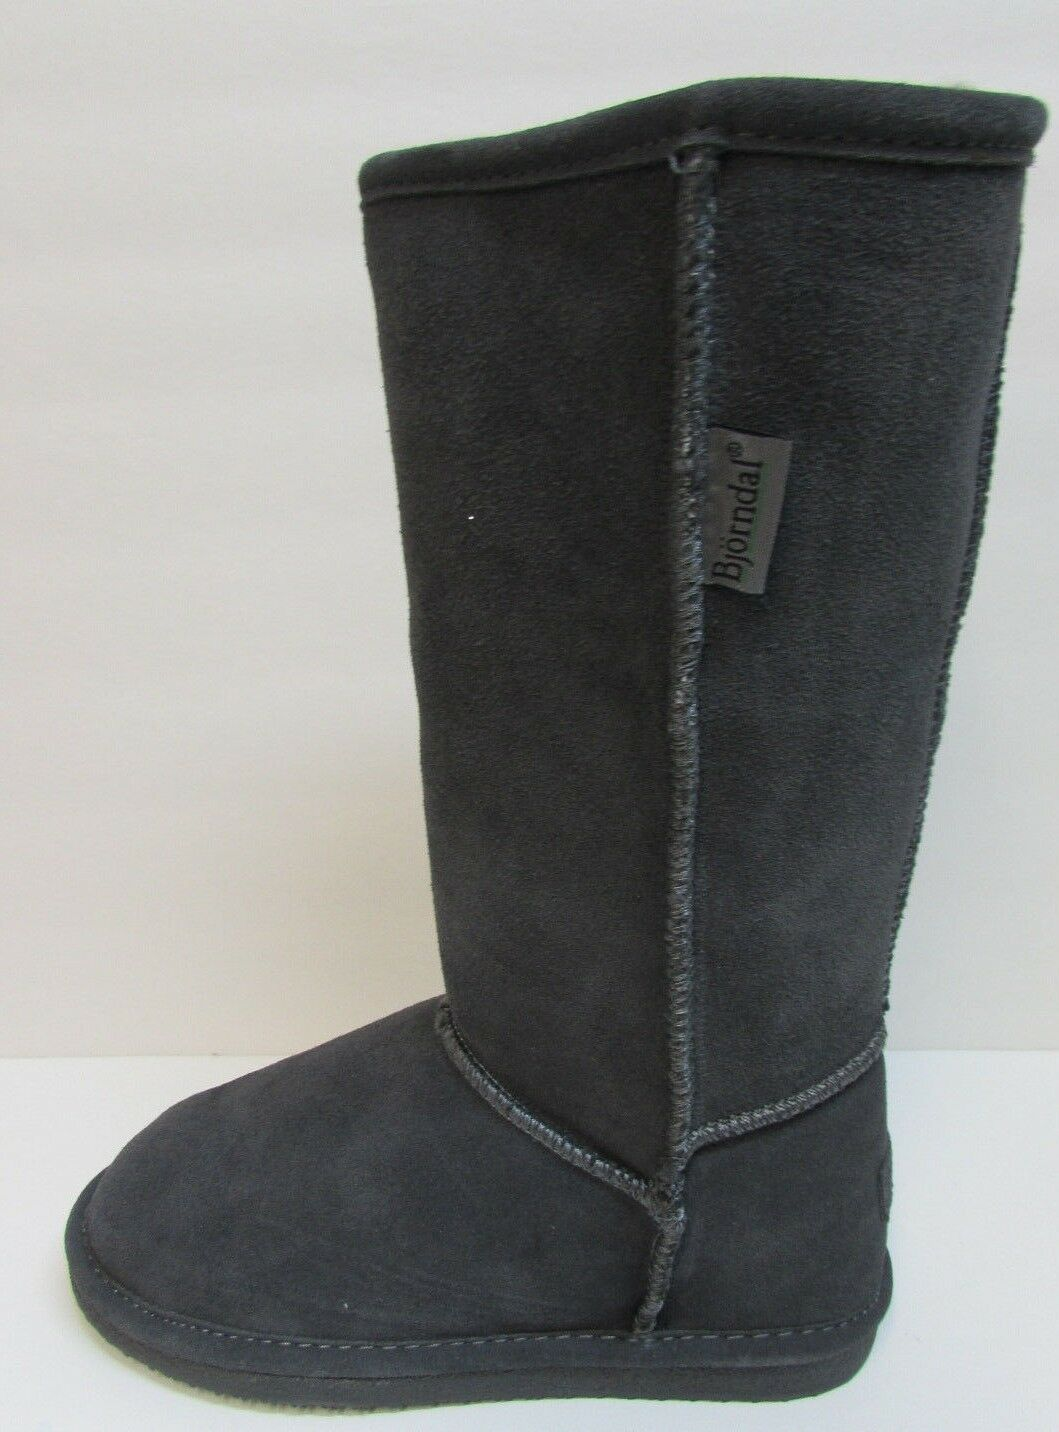 Bjorndal Size 6 Gray Leather Wool Boots New Womens Shoes